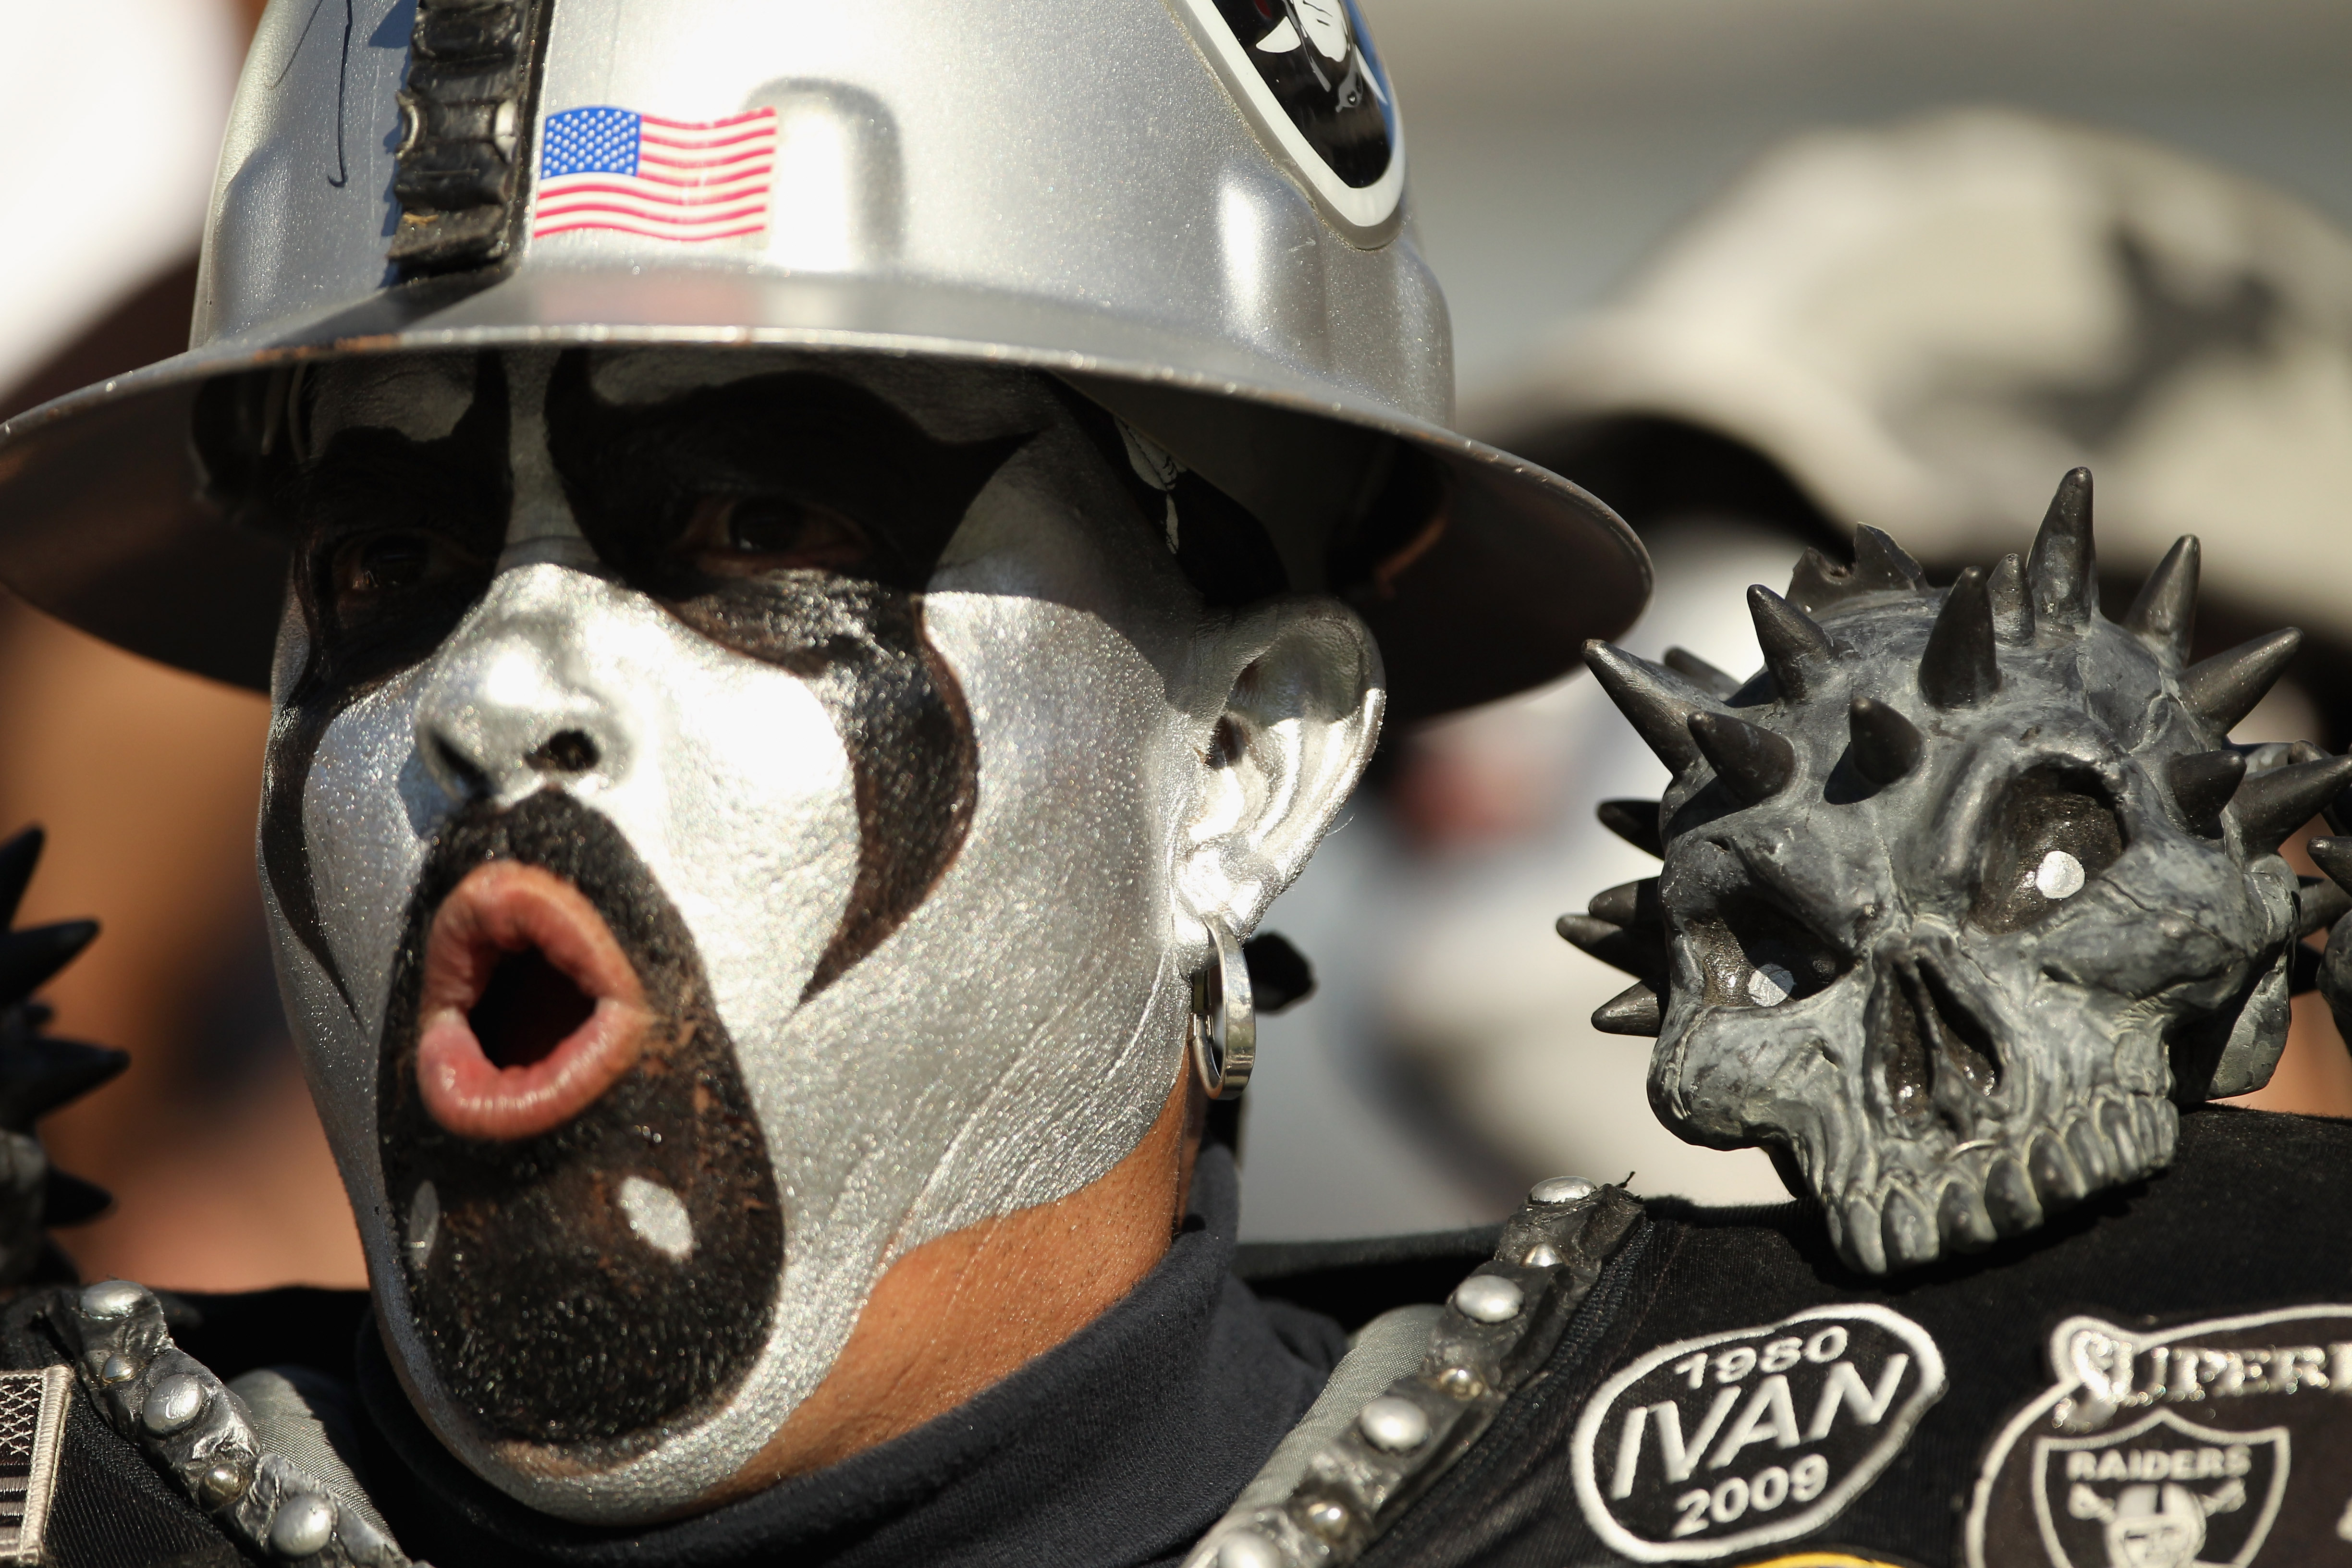 OAKLAND, CA - OCTOBER 10:  An Oakland Raiders fan cheers on his team during their game against the San Diego Chargers at Oakland-Alameda County Coliseum on October 10, 2010 in Oakland, California.  (Photo by Ezra Shaw/Getty Images)